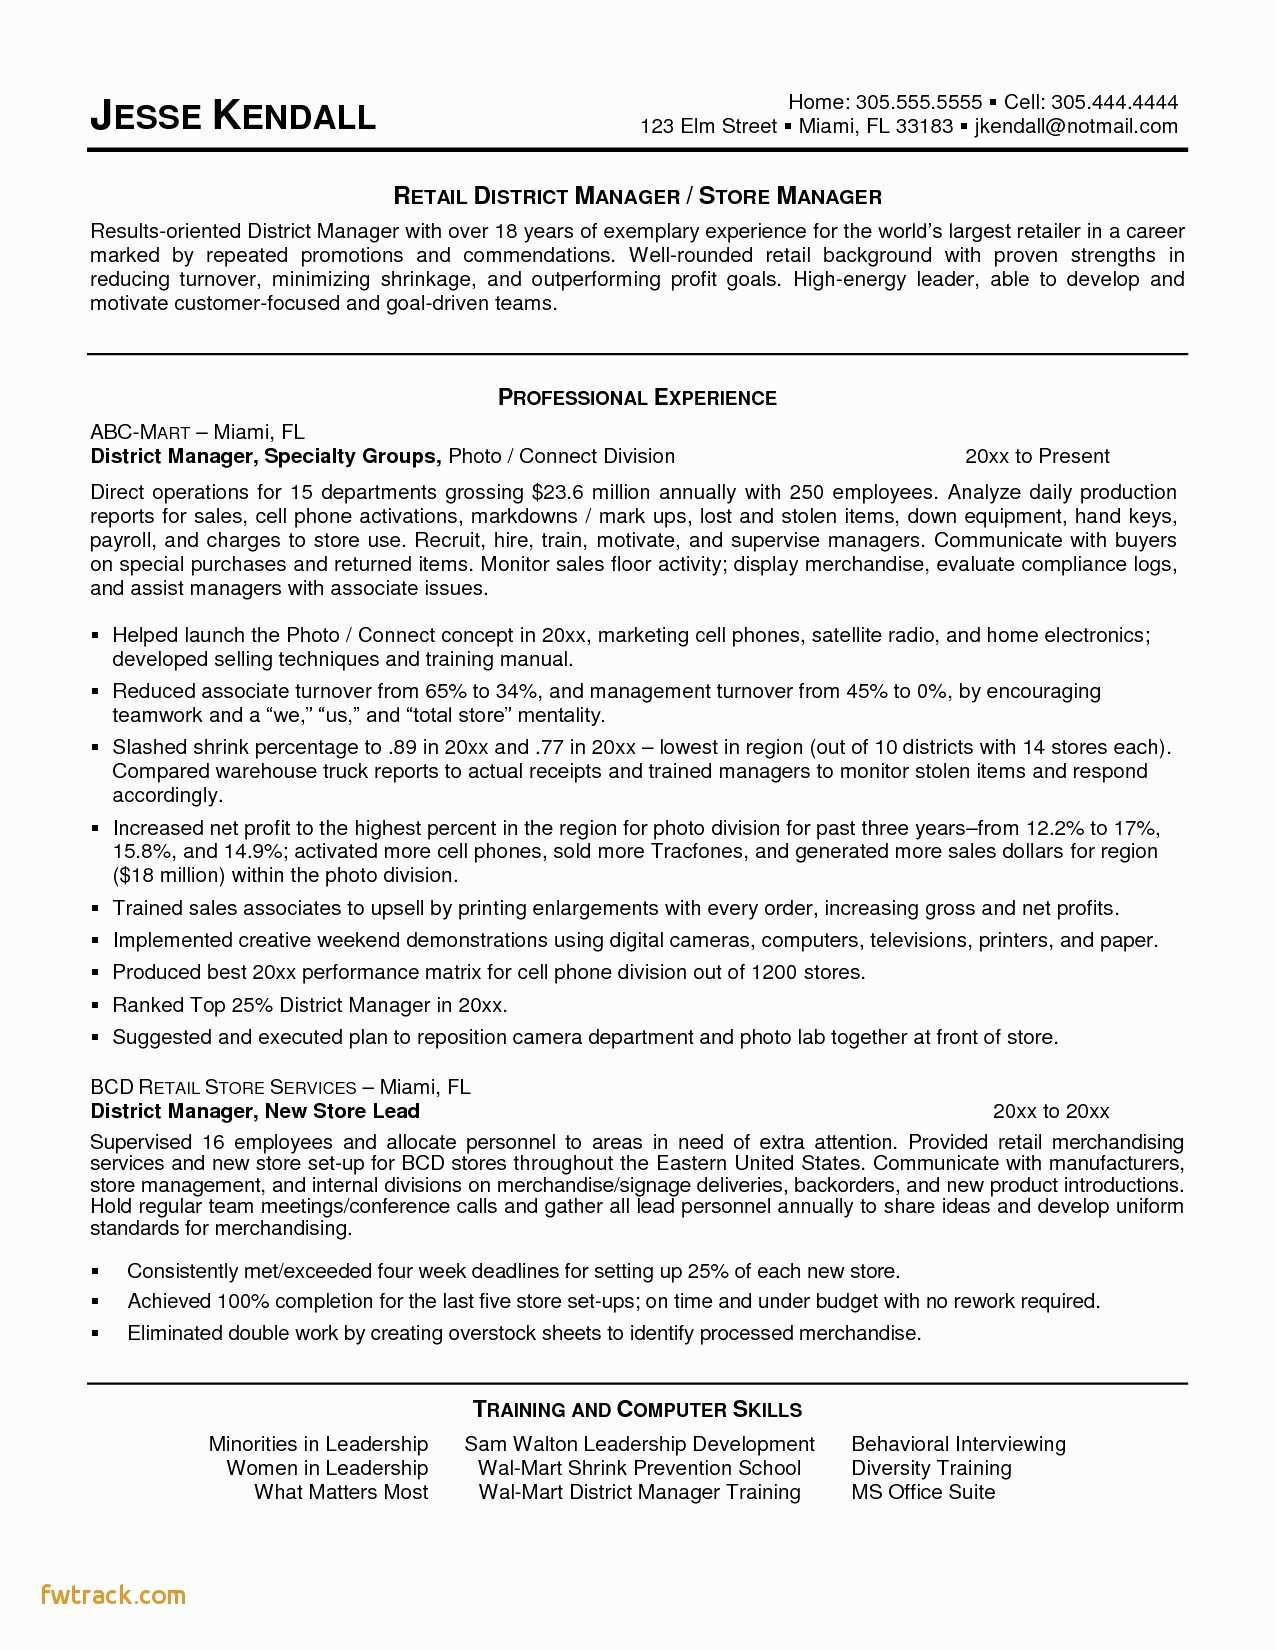 Resume for Nursing Student with No Experience - Inspirational Resume Template No Experience